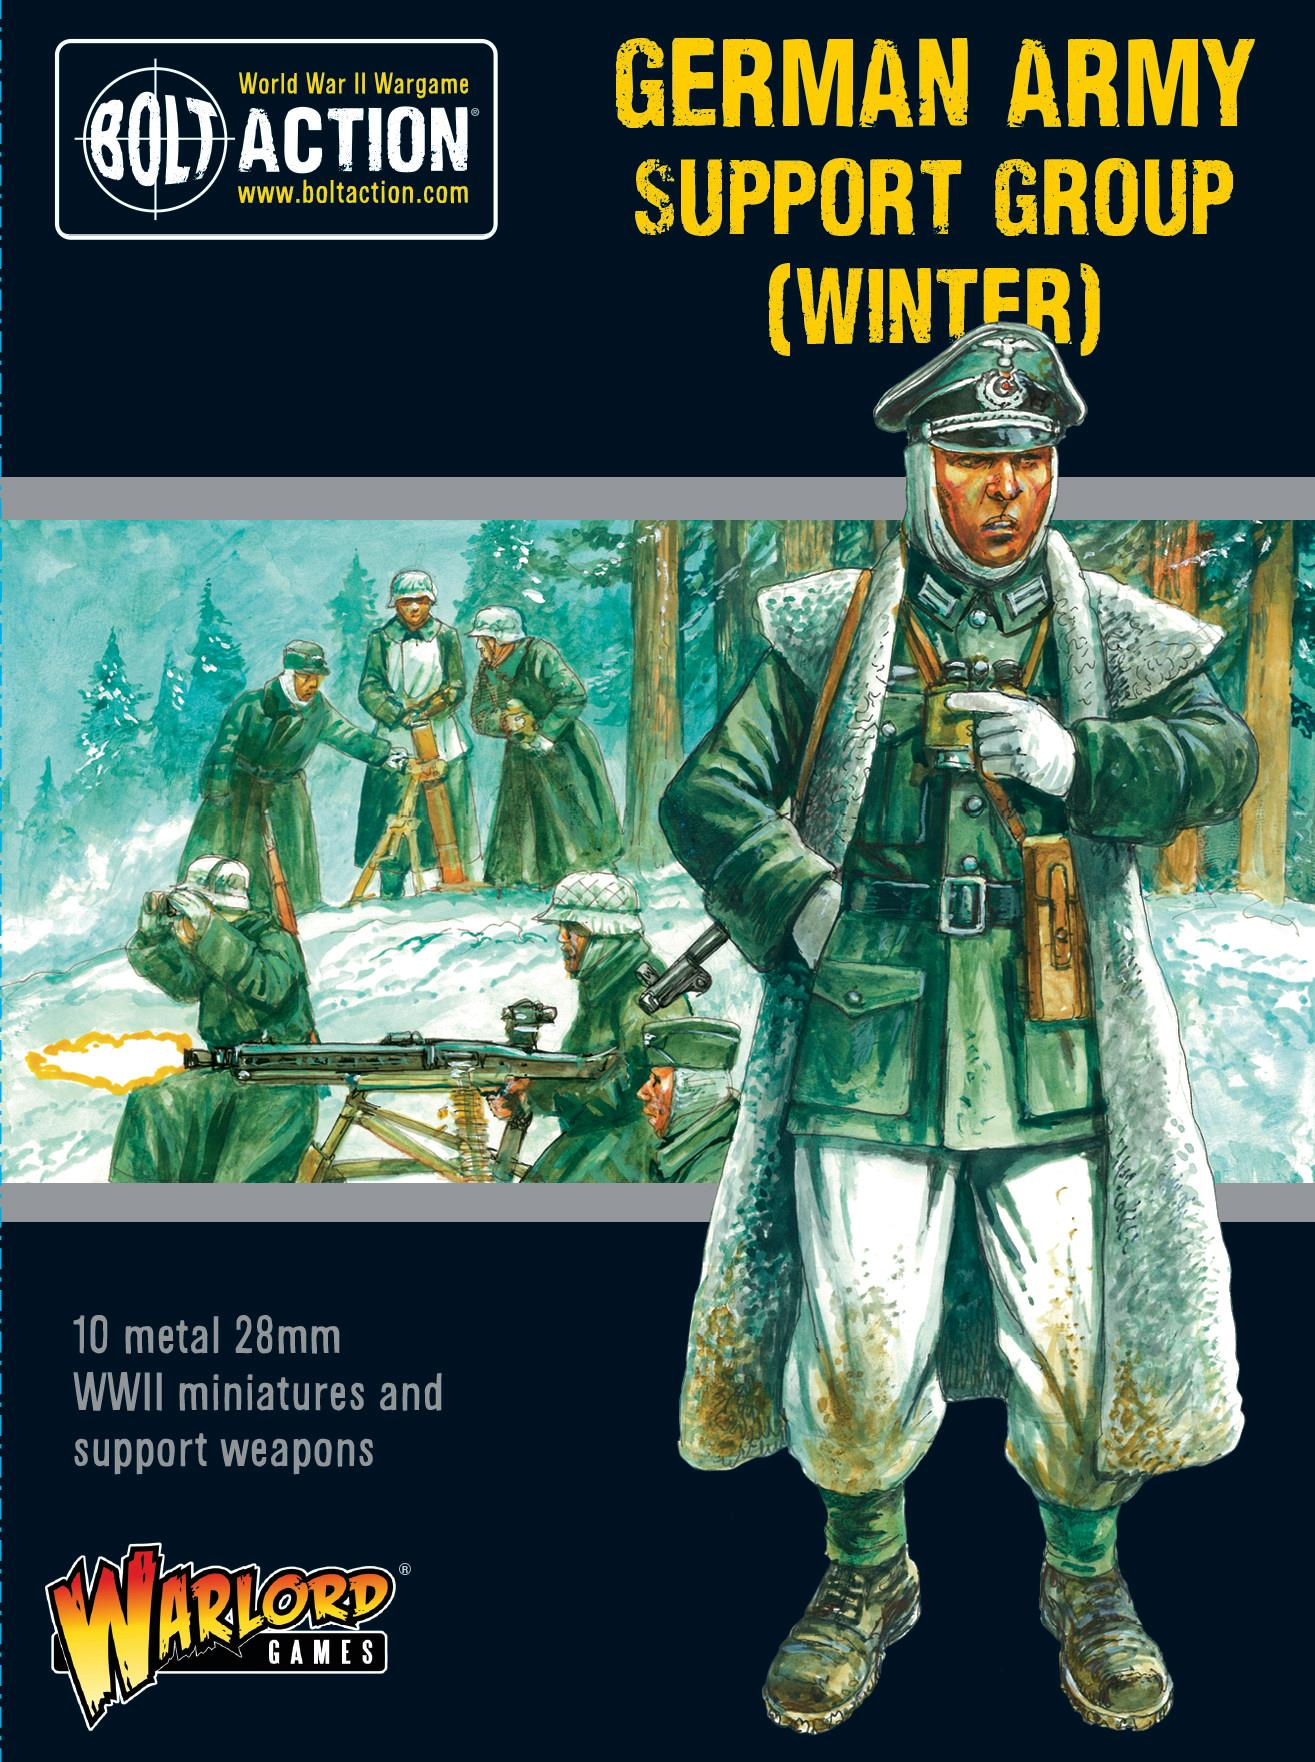 German Army (Winter) Support Group - 25% Off Black Friday